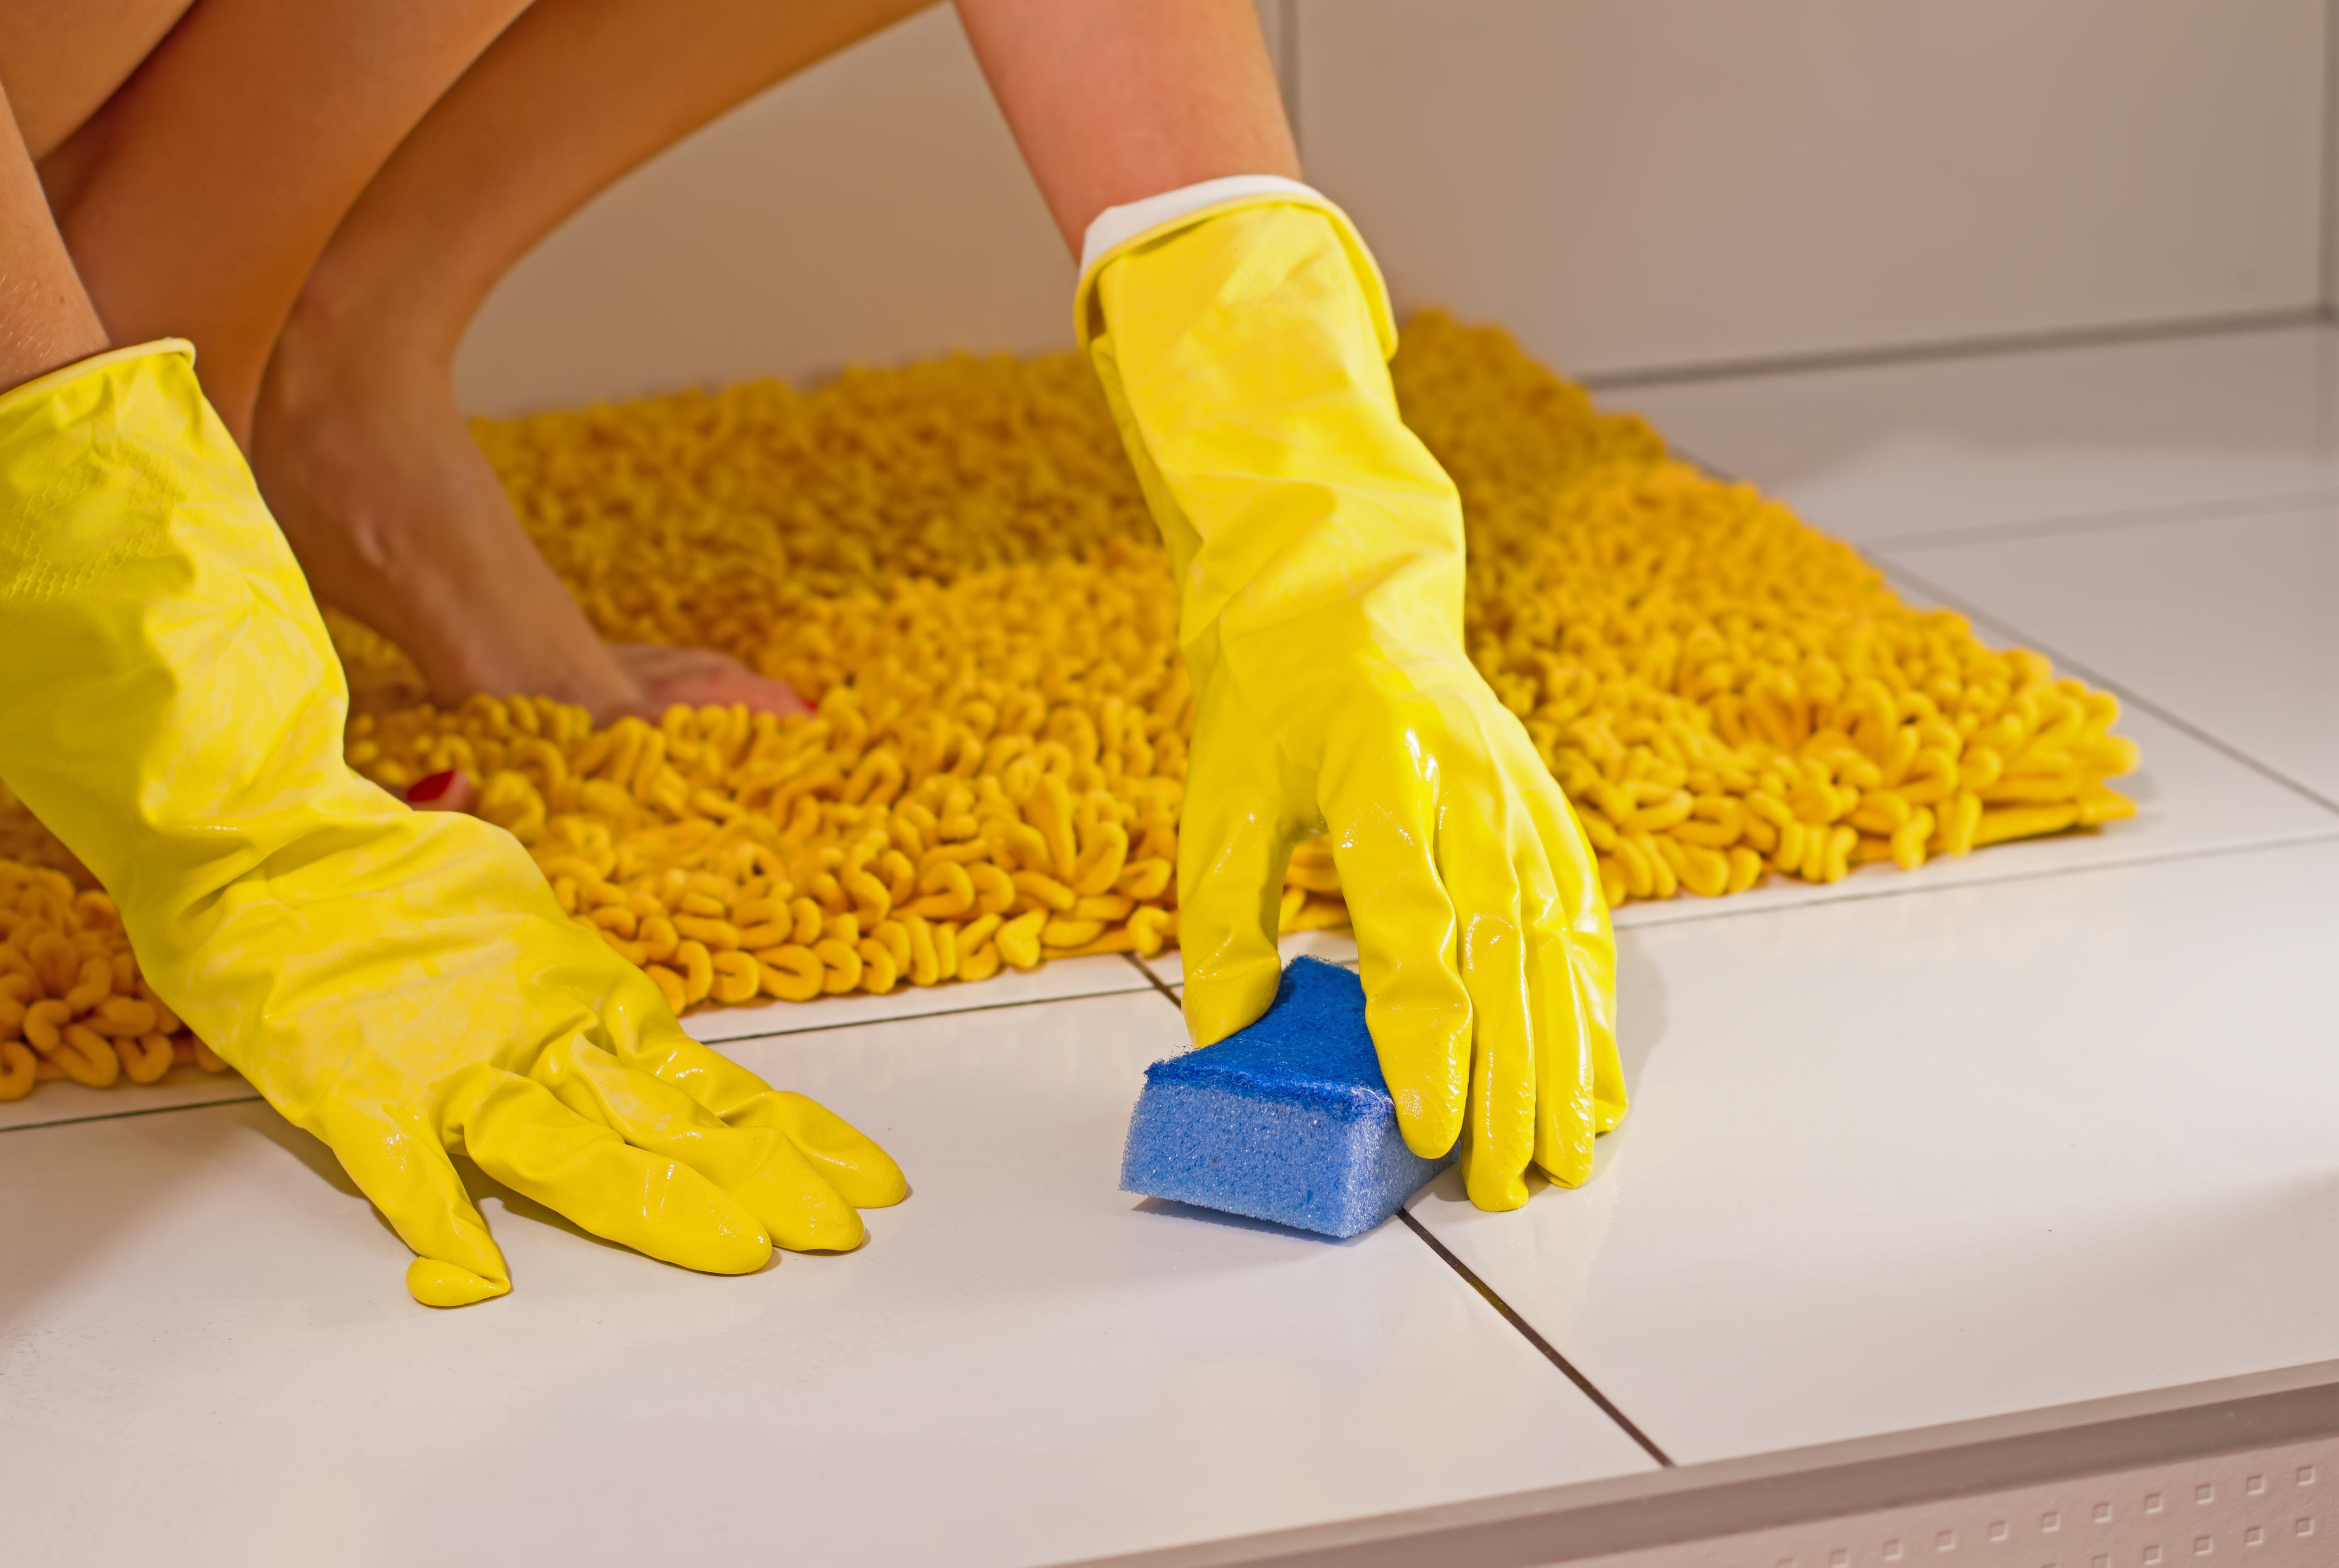 Bathroom cleaning services in Barnet